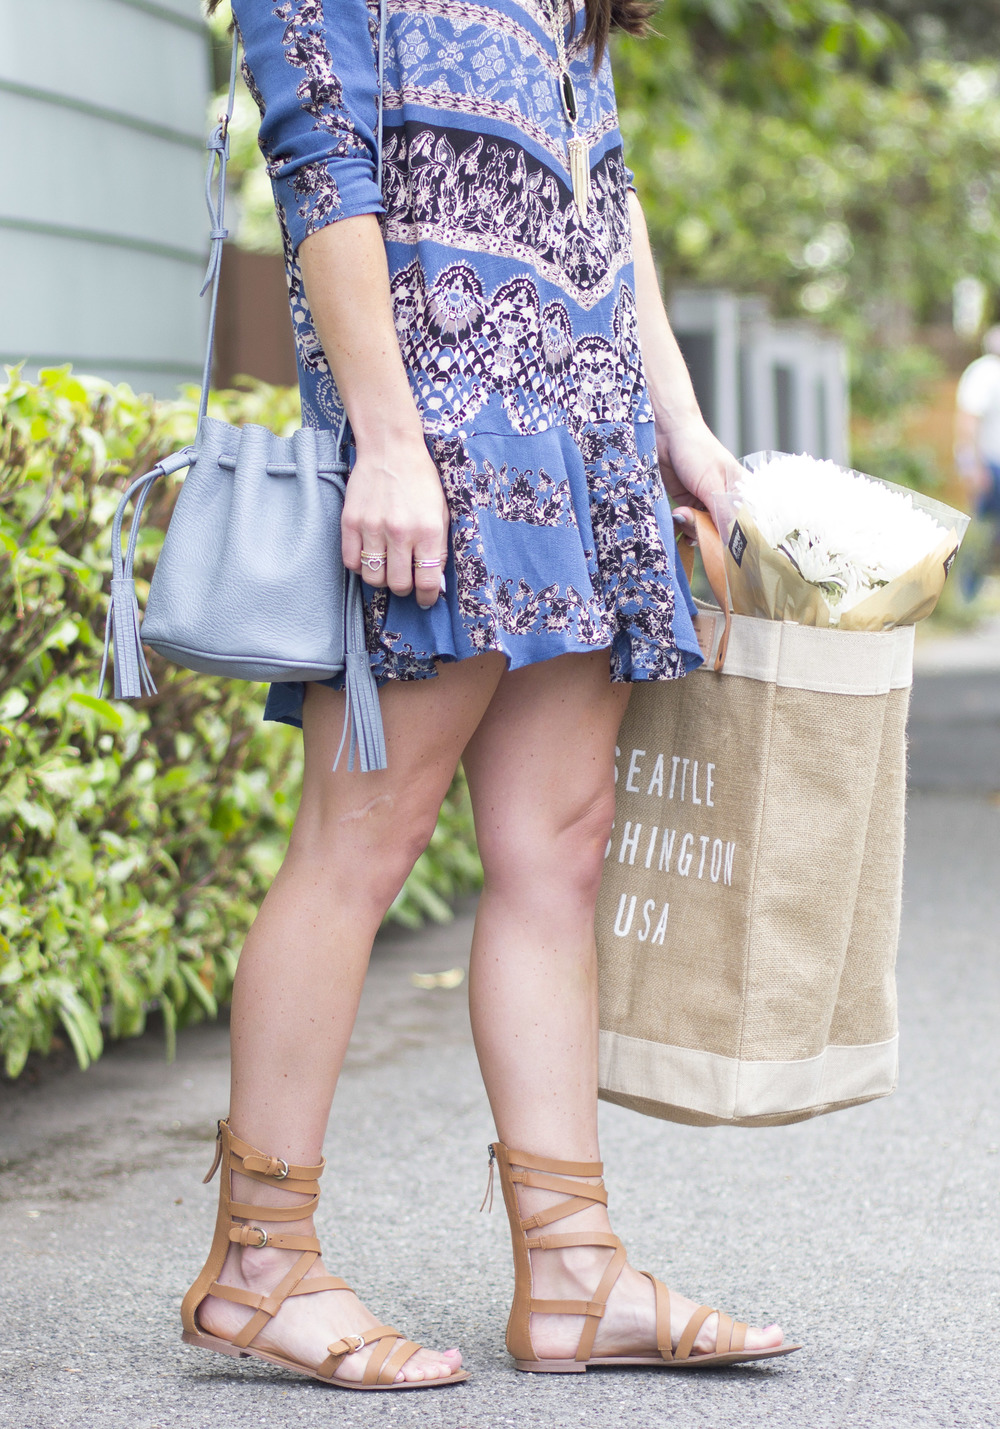 Back to school shopping for adults- the N Sale, Free People 'Smooth Talker' Top, Joe's Jeans Gladiator Sandals, Apolis City Market Tote, Kendra Scott Rayne Necklace